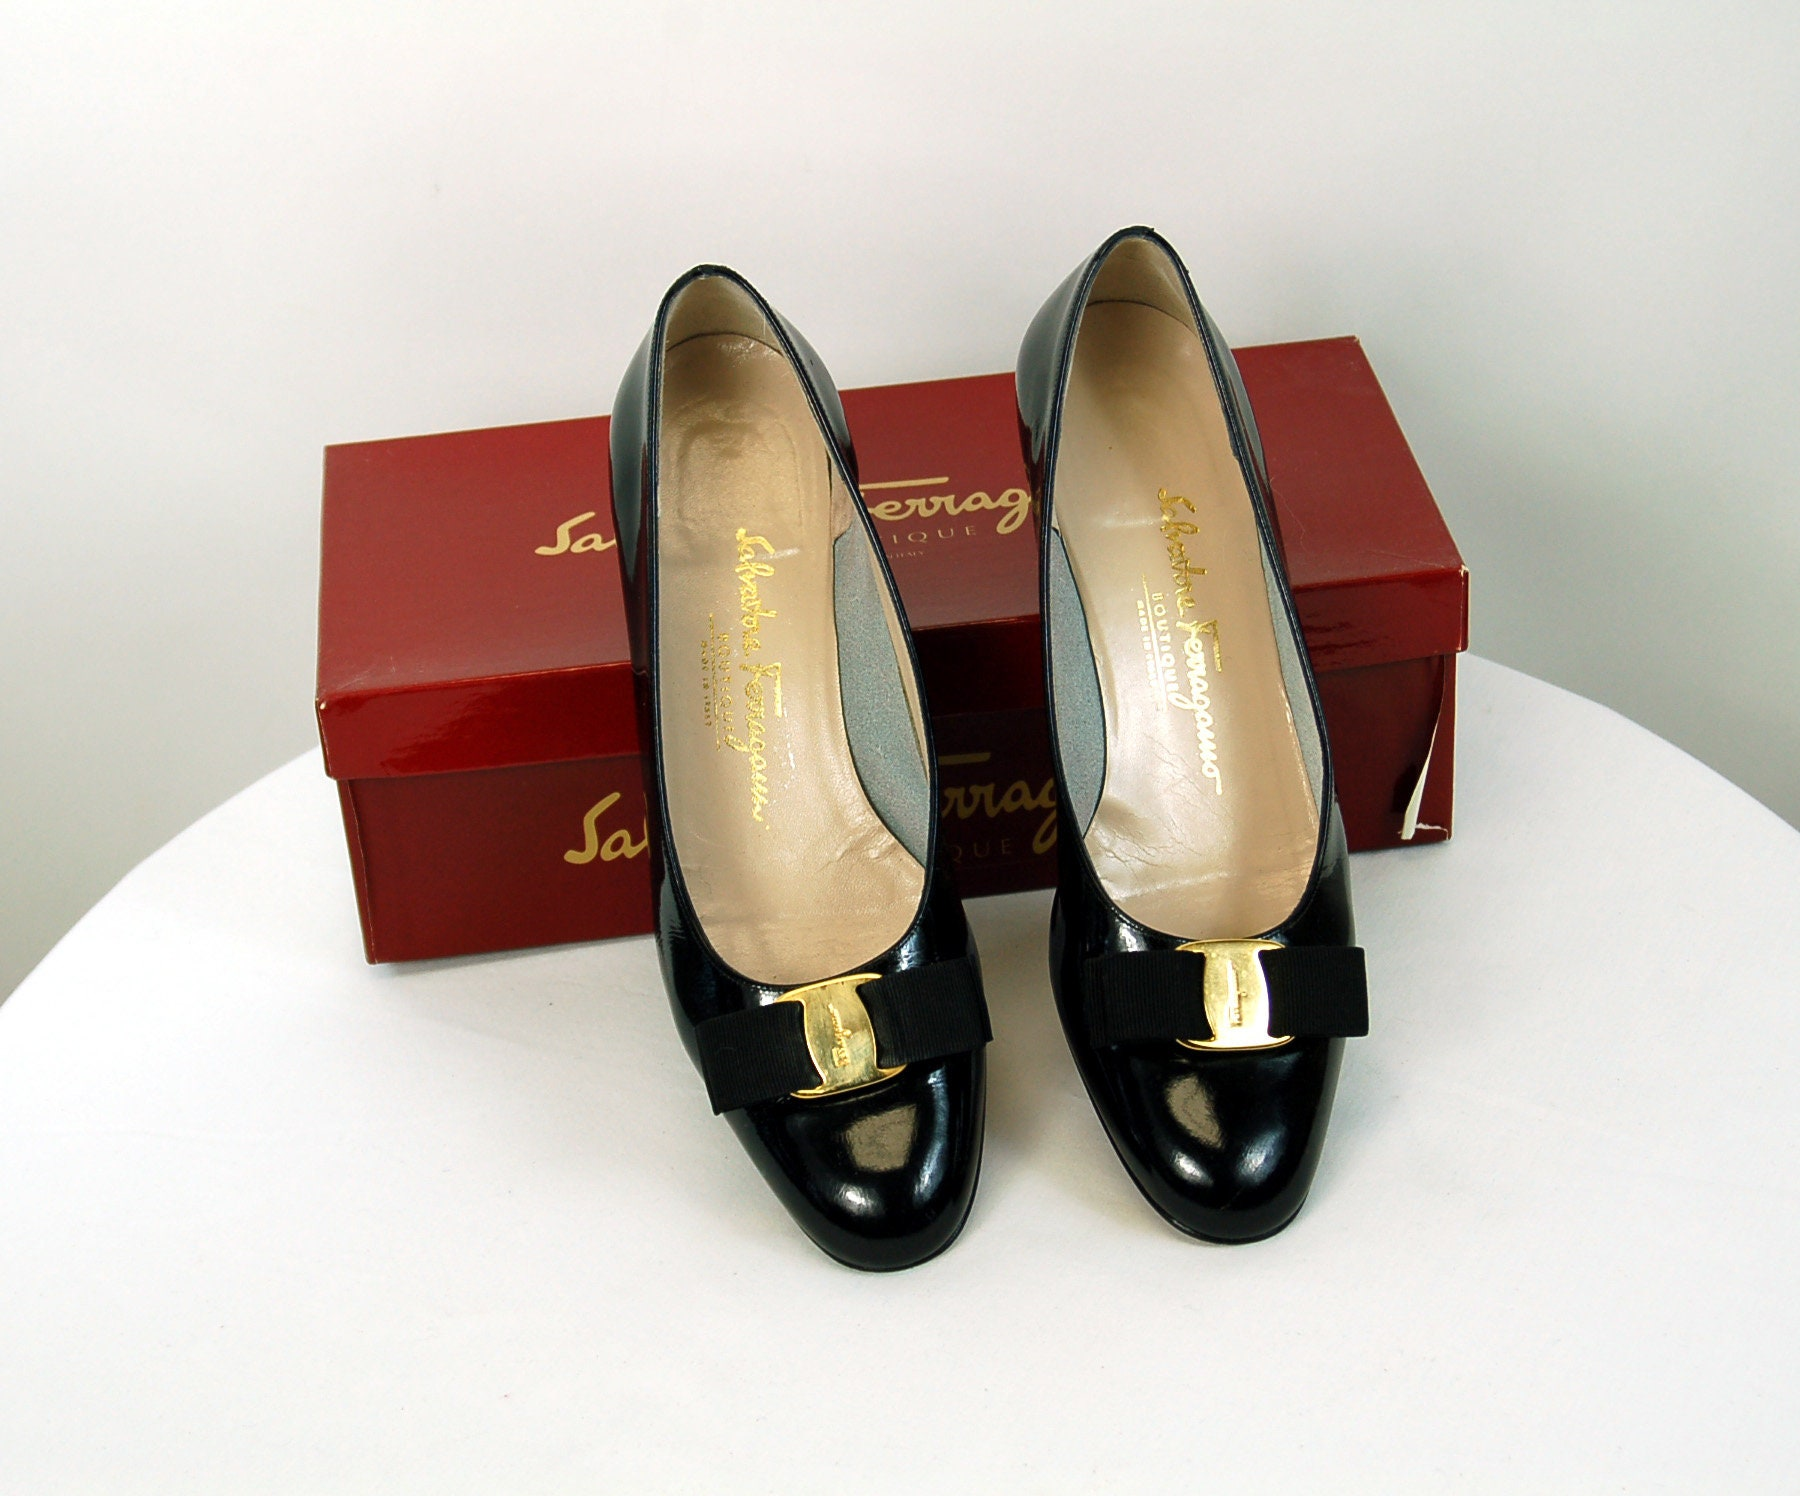 1980s Ferragamo shoes flats black patent toe leather with bow on toe patent Size 9AA or 8 245fbd